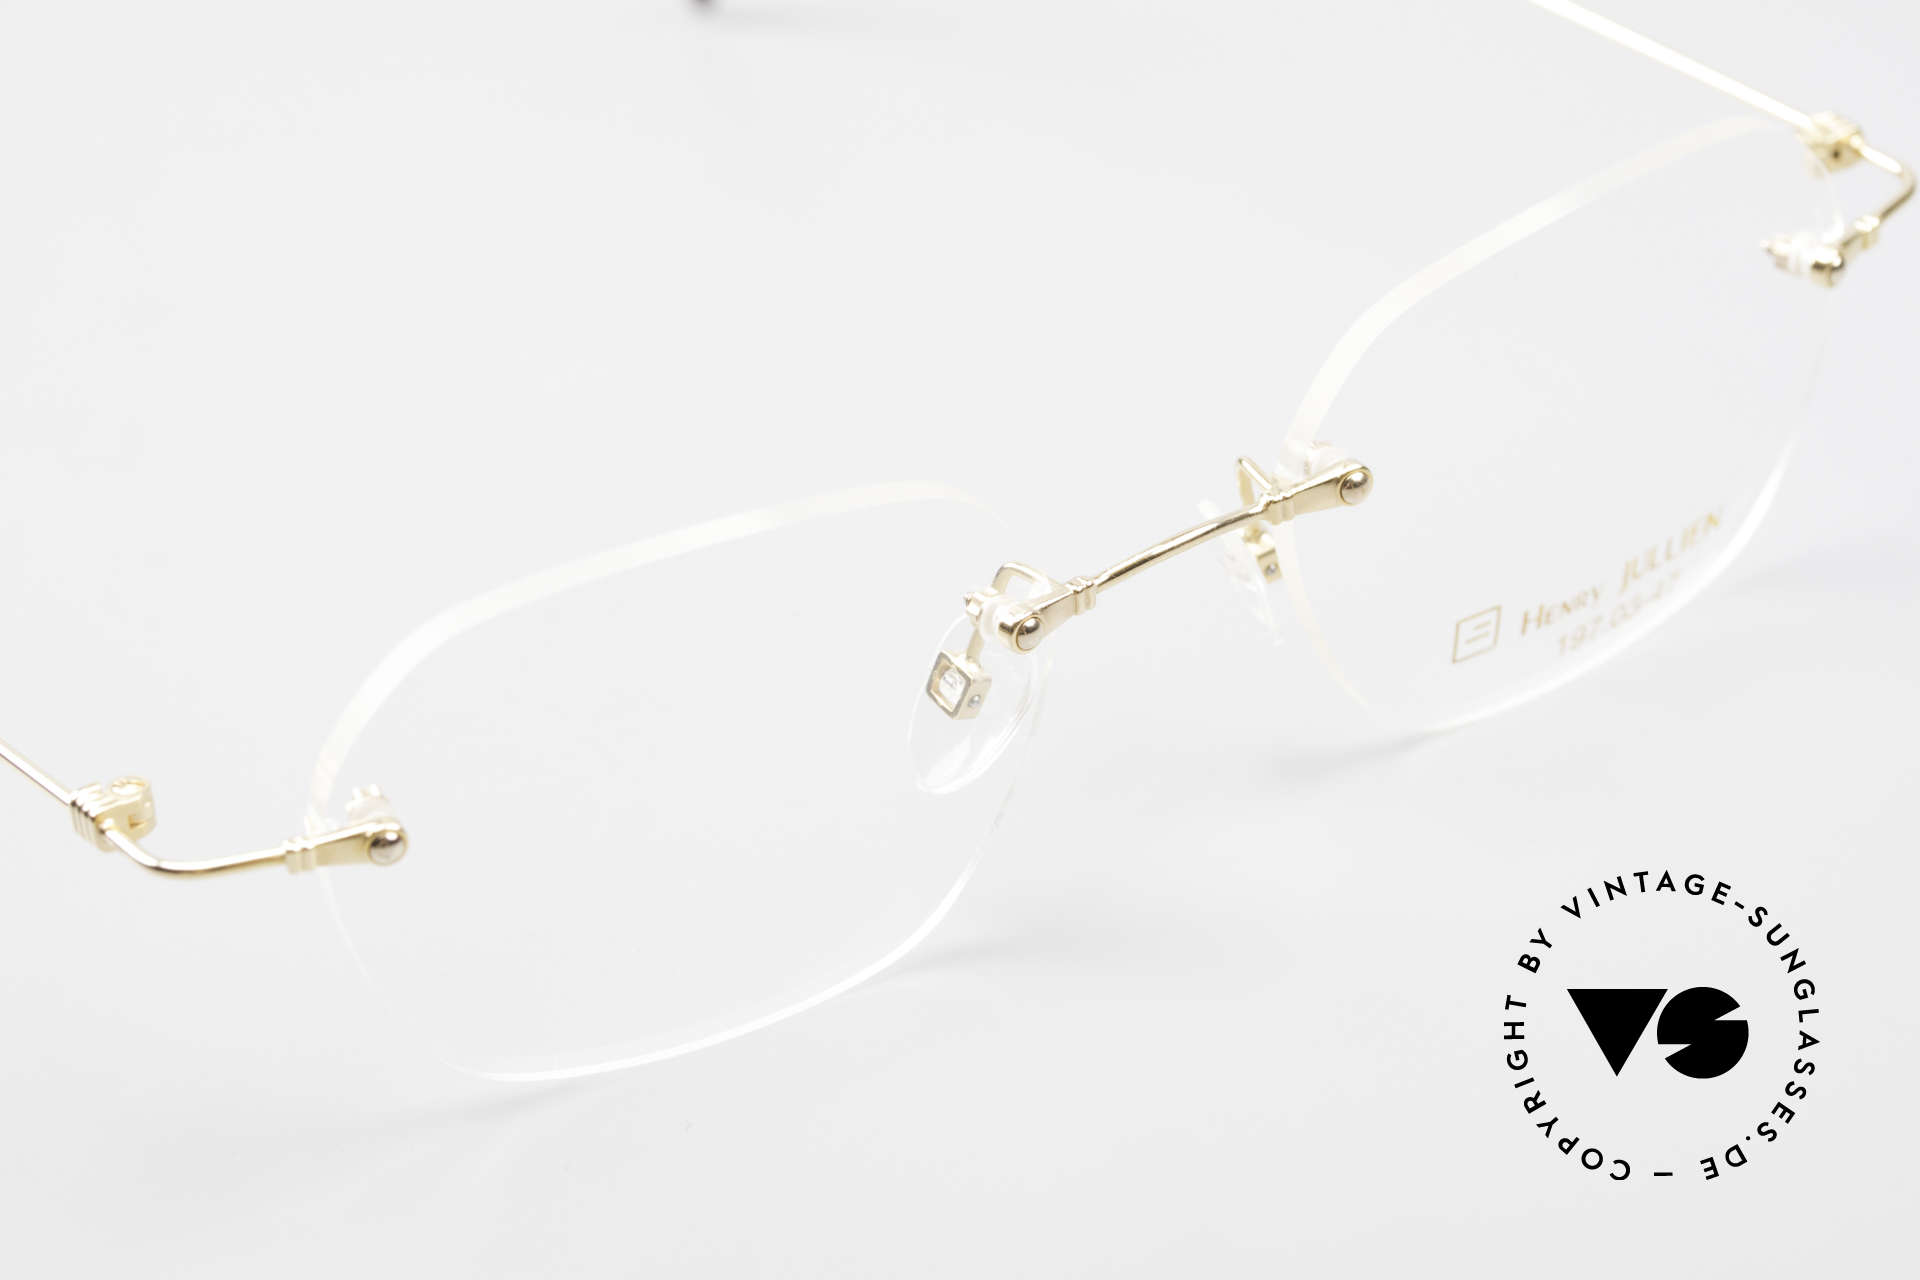 Henry Jullien Melrose 4000 Rimless Vintage Frame 90's, NO retro specs; but an authentic rarity from 1998/99, Made for Men and Women